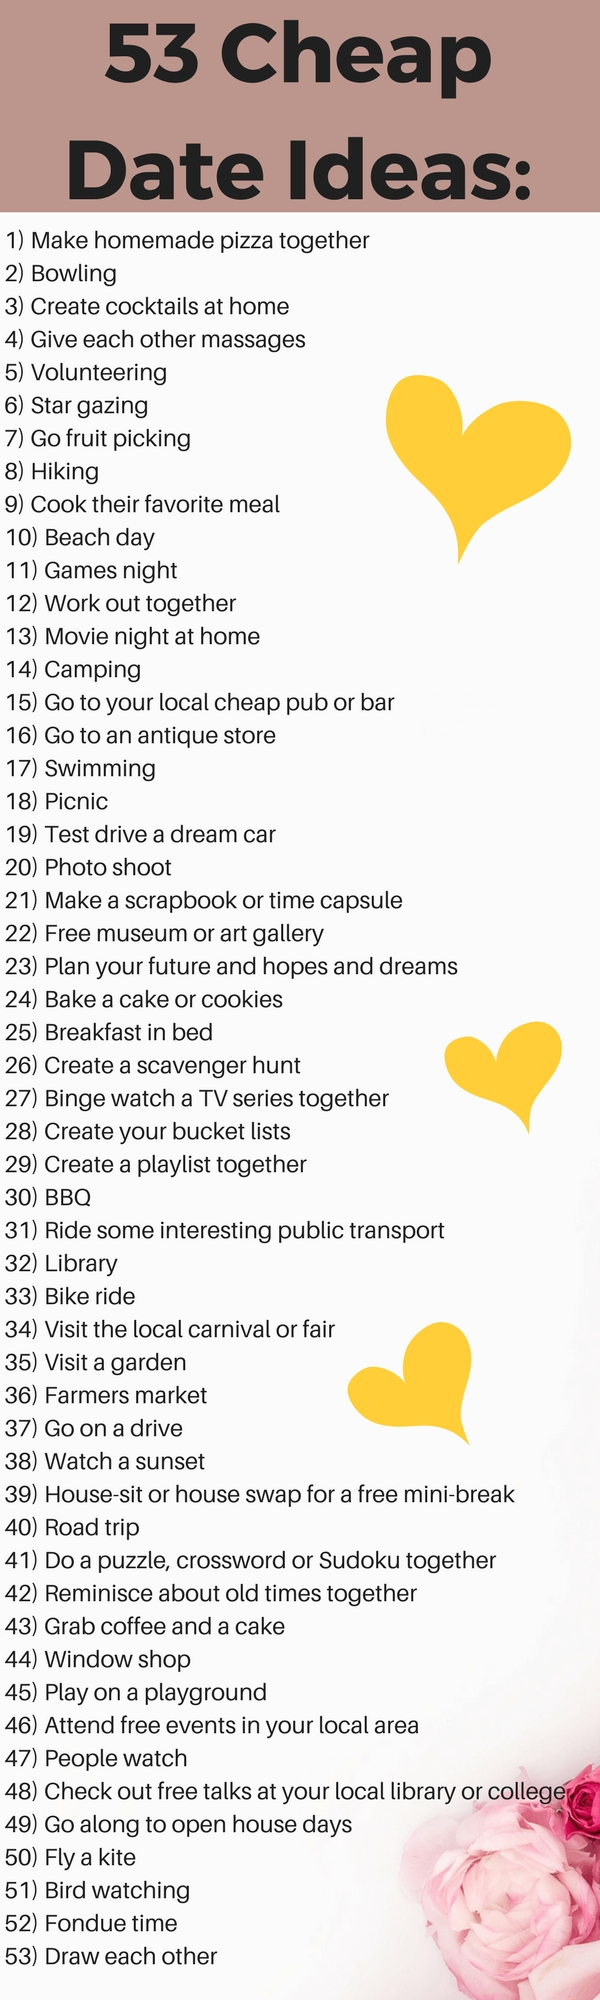 dating-ideas-for-college-students